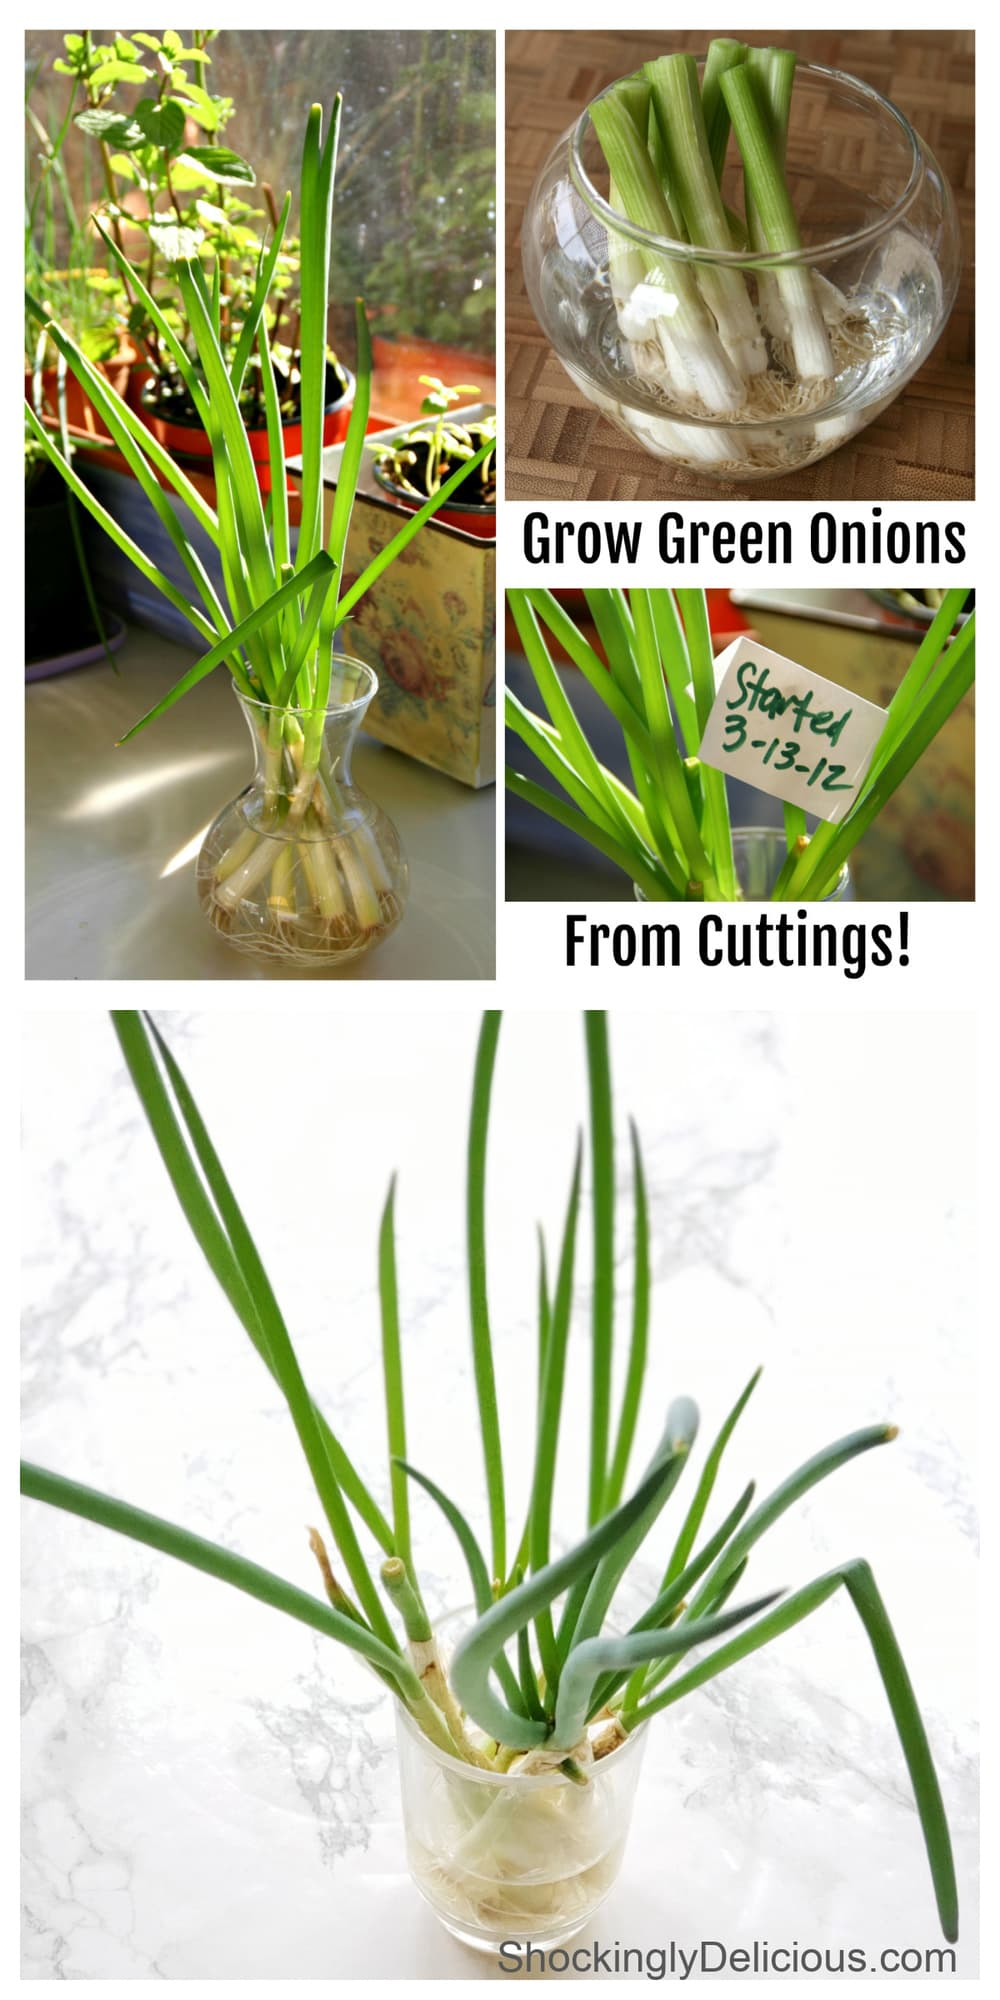 Photo collage of how to Grow Green Onions from Cuttings on ShockinglyDelicious.com